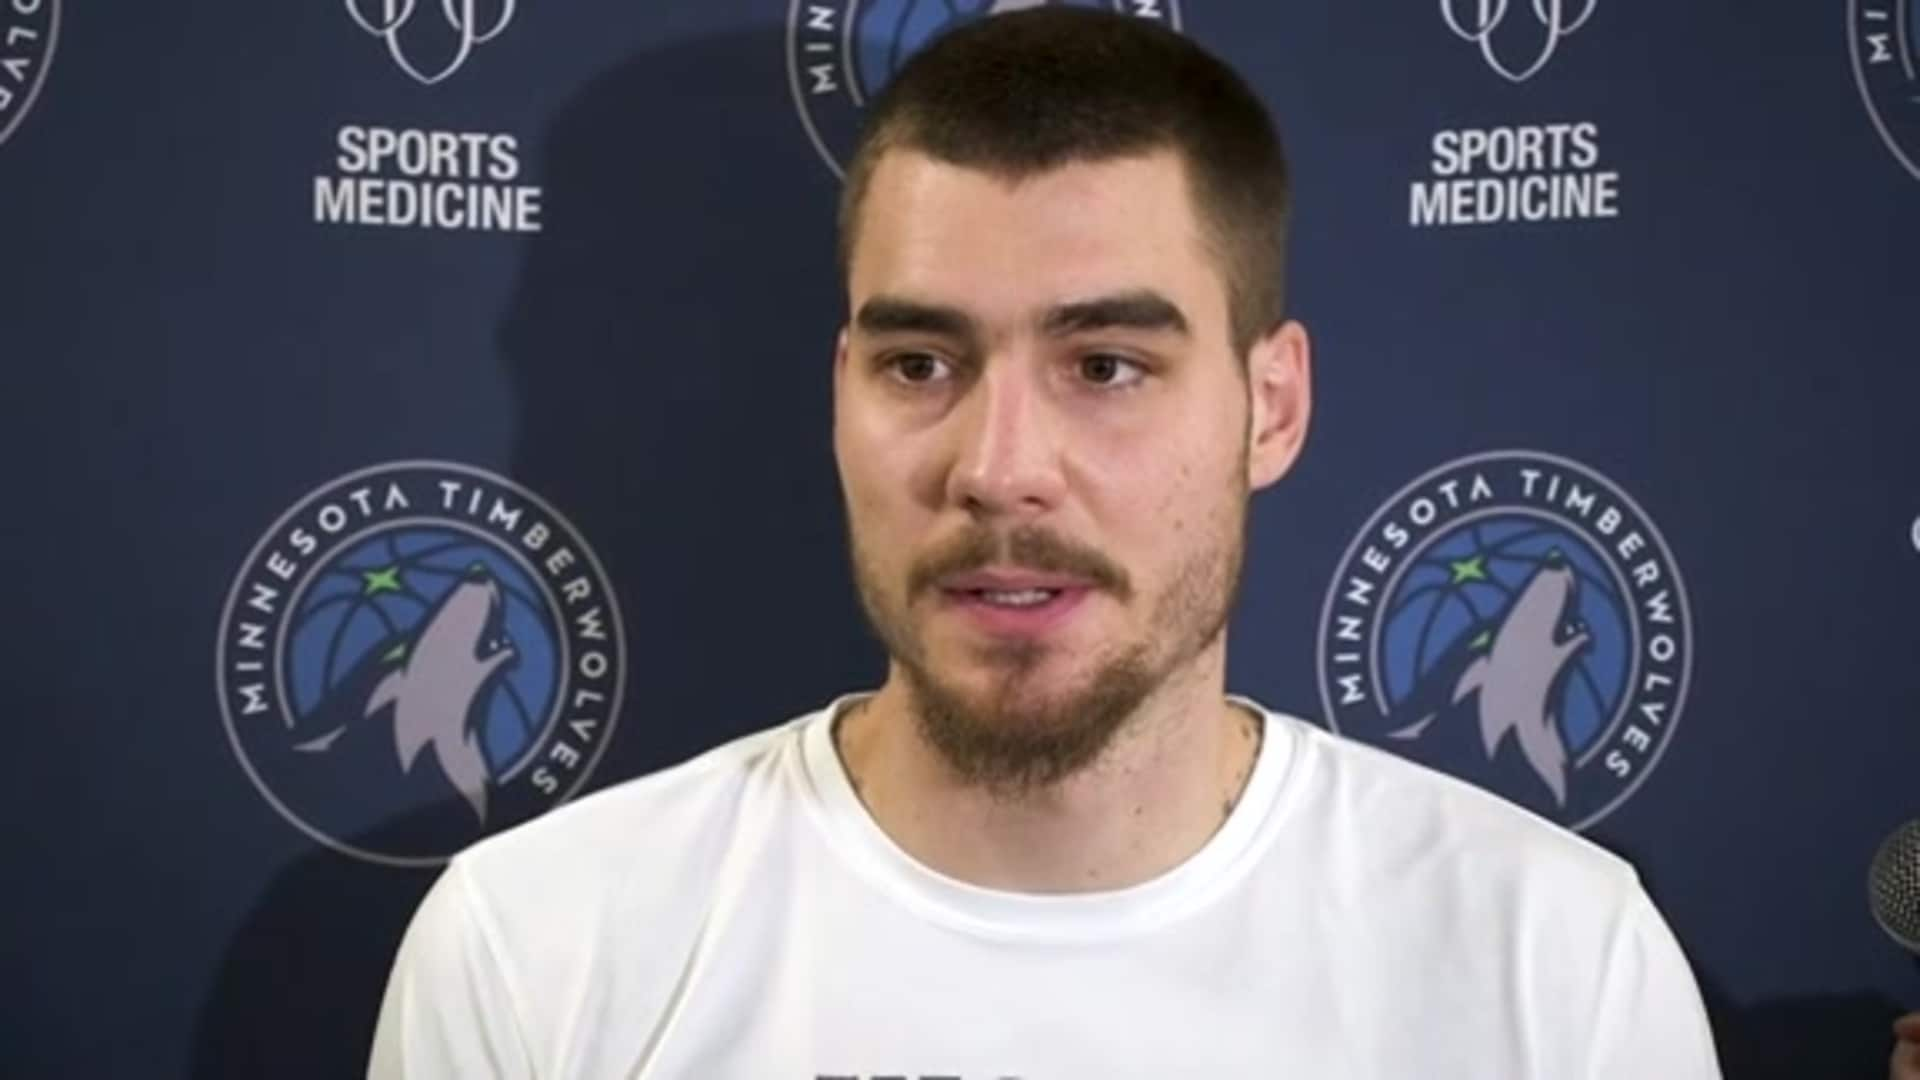 Timberwolves Forward Juancho Hernangomez: 'We Want To Be A Family' (2.20.20)